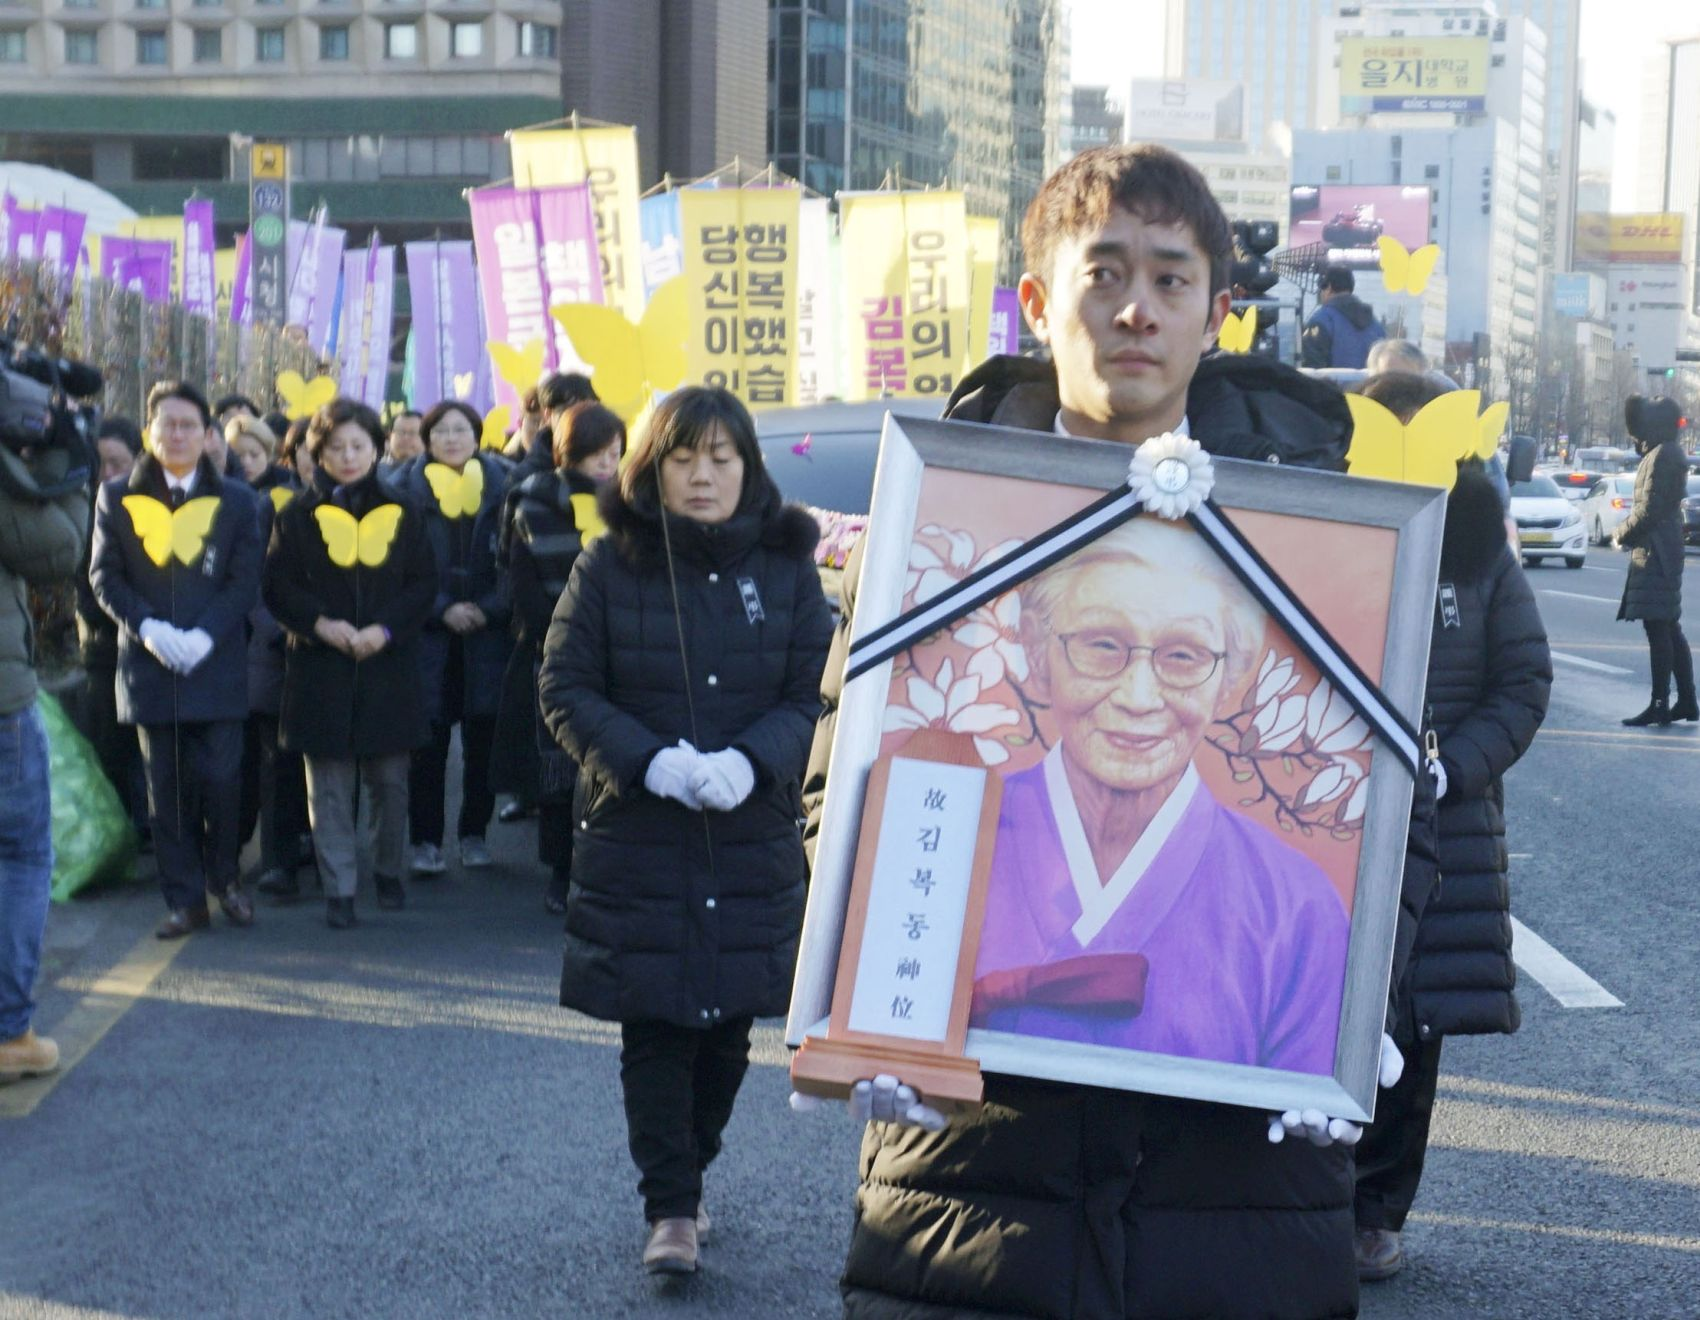 Ignoring Facts, U.S. Newspapers Repeatedly Misreport on Japan, Comfort Women